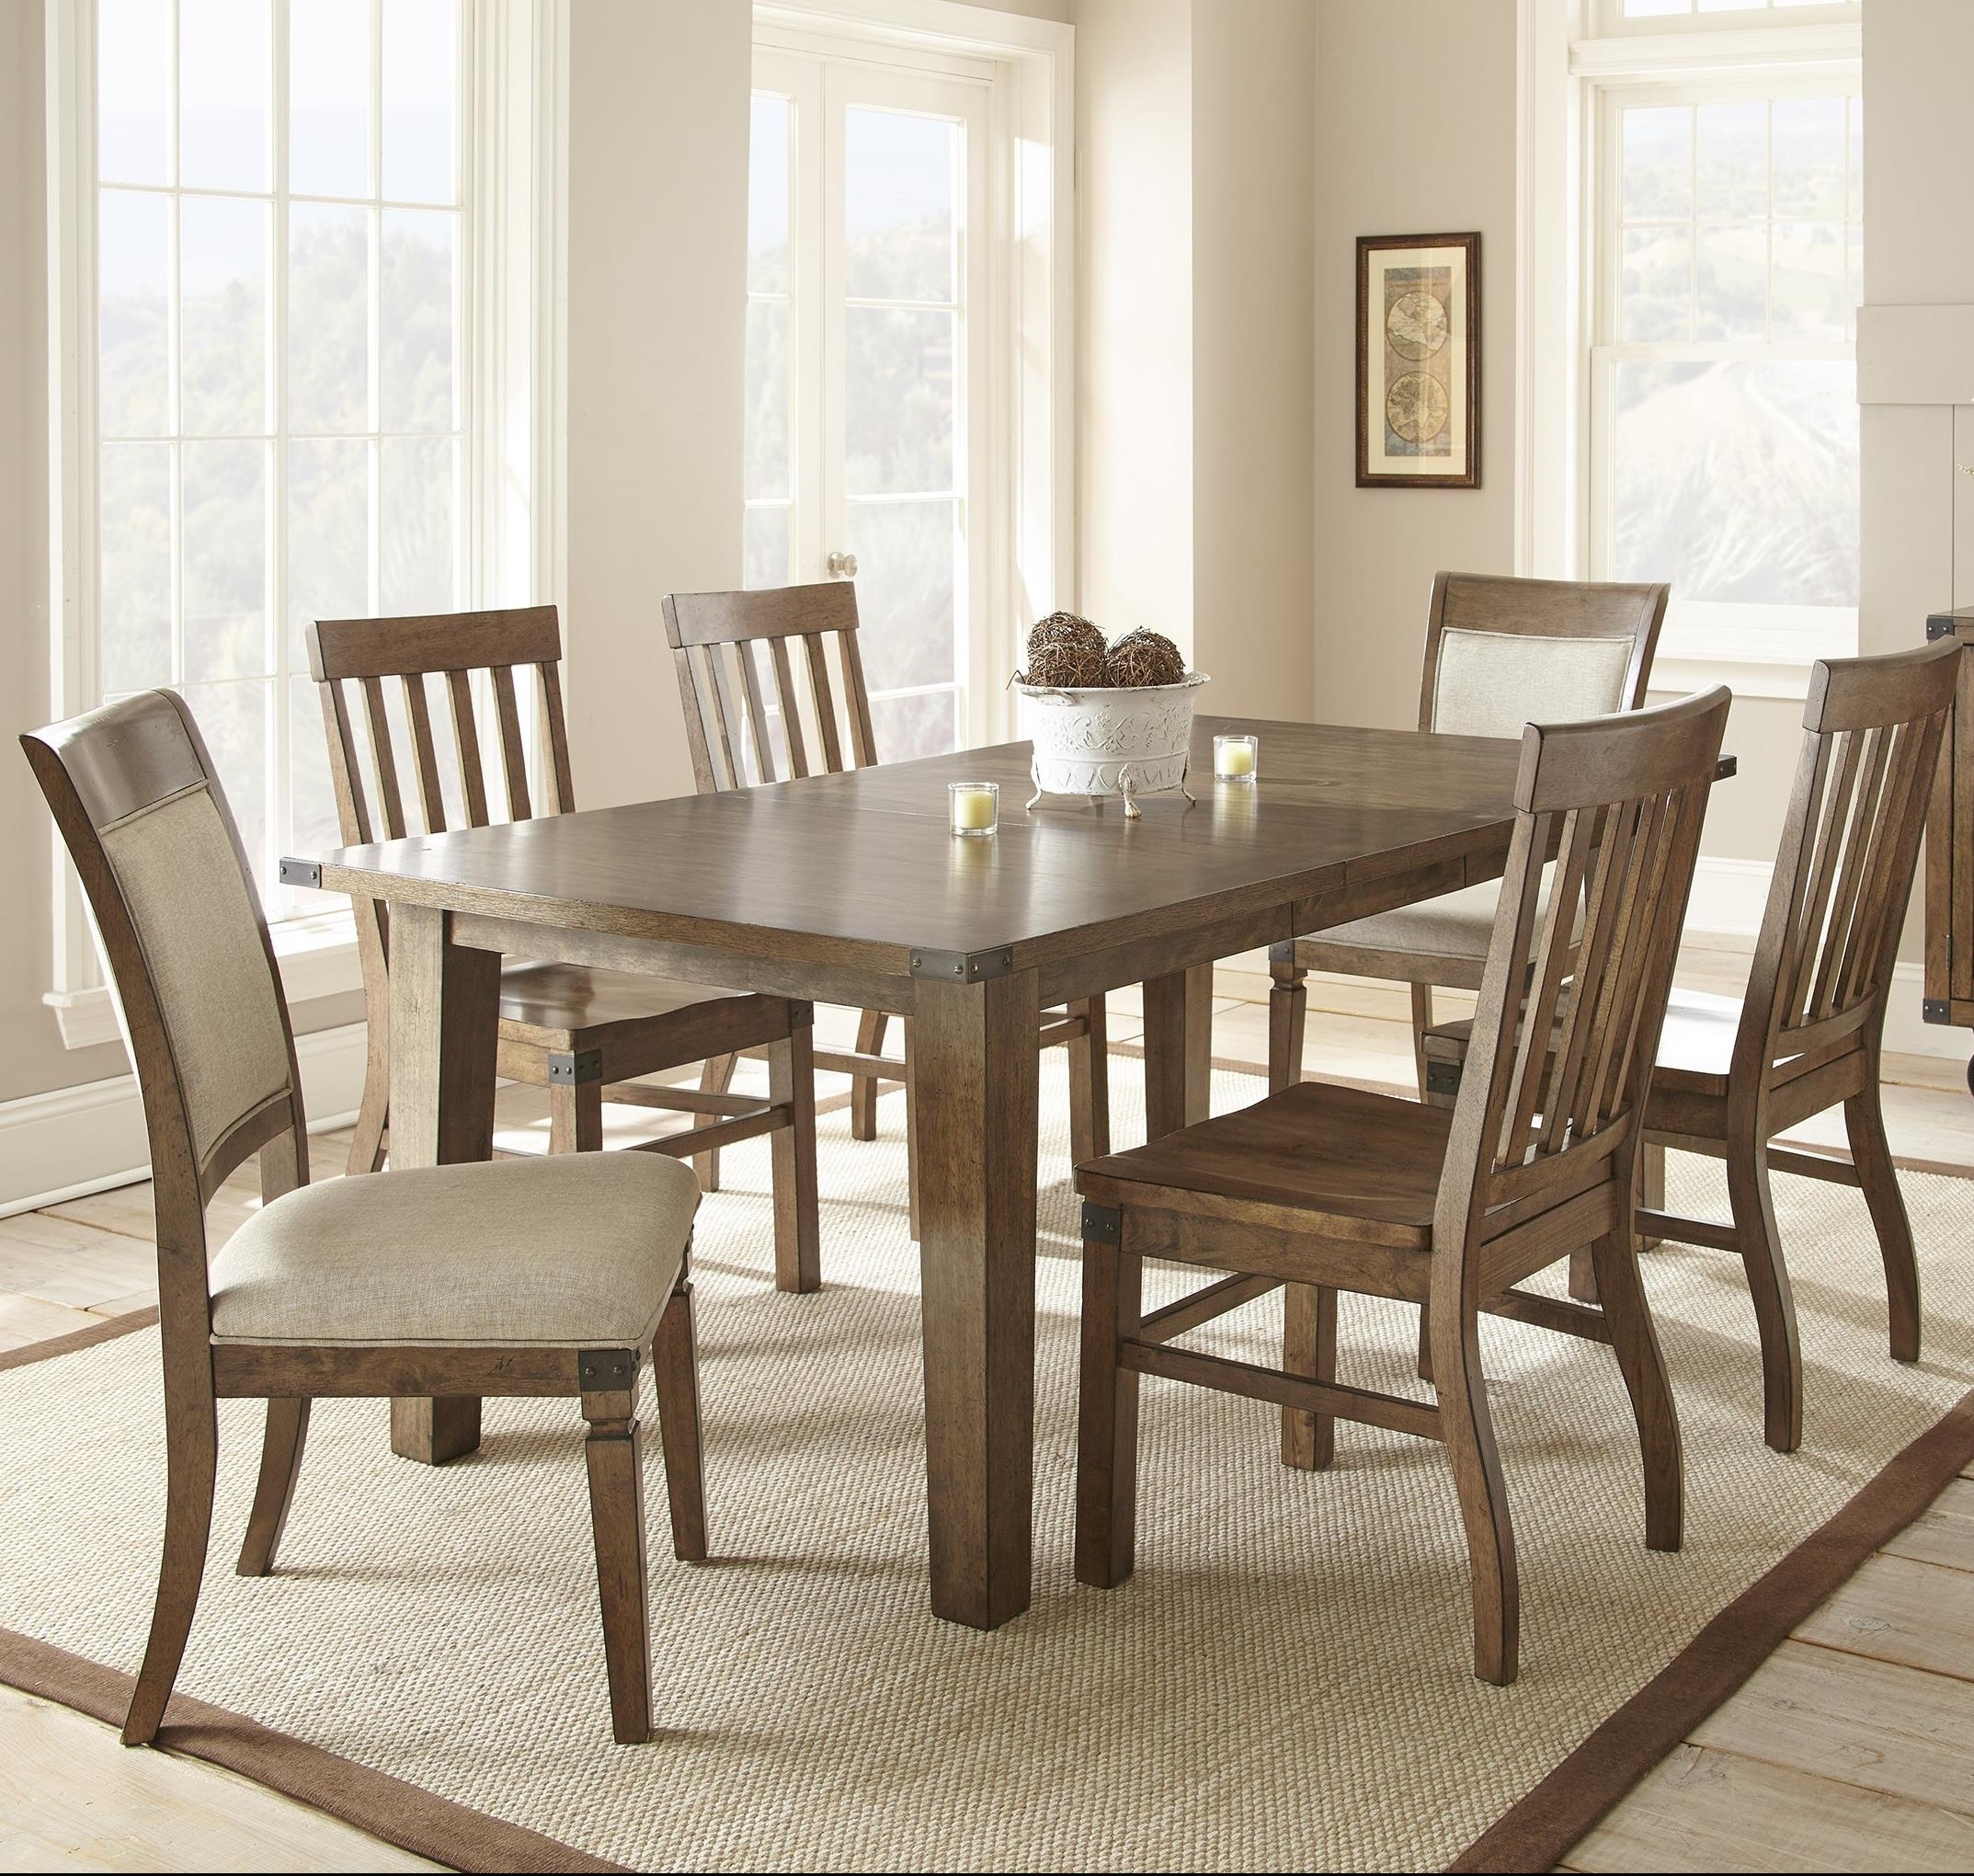 Steve Silver Hailee 7 Piece Dining Set   Item Number: HA500T+2xS+4x450S